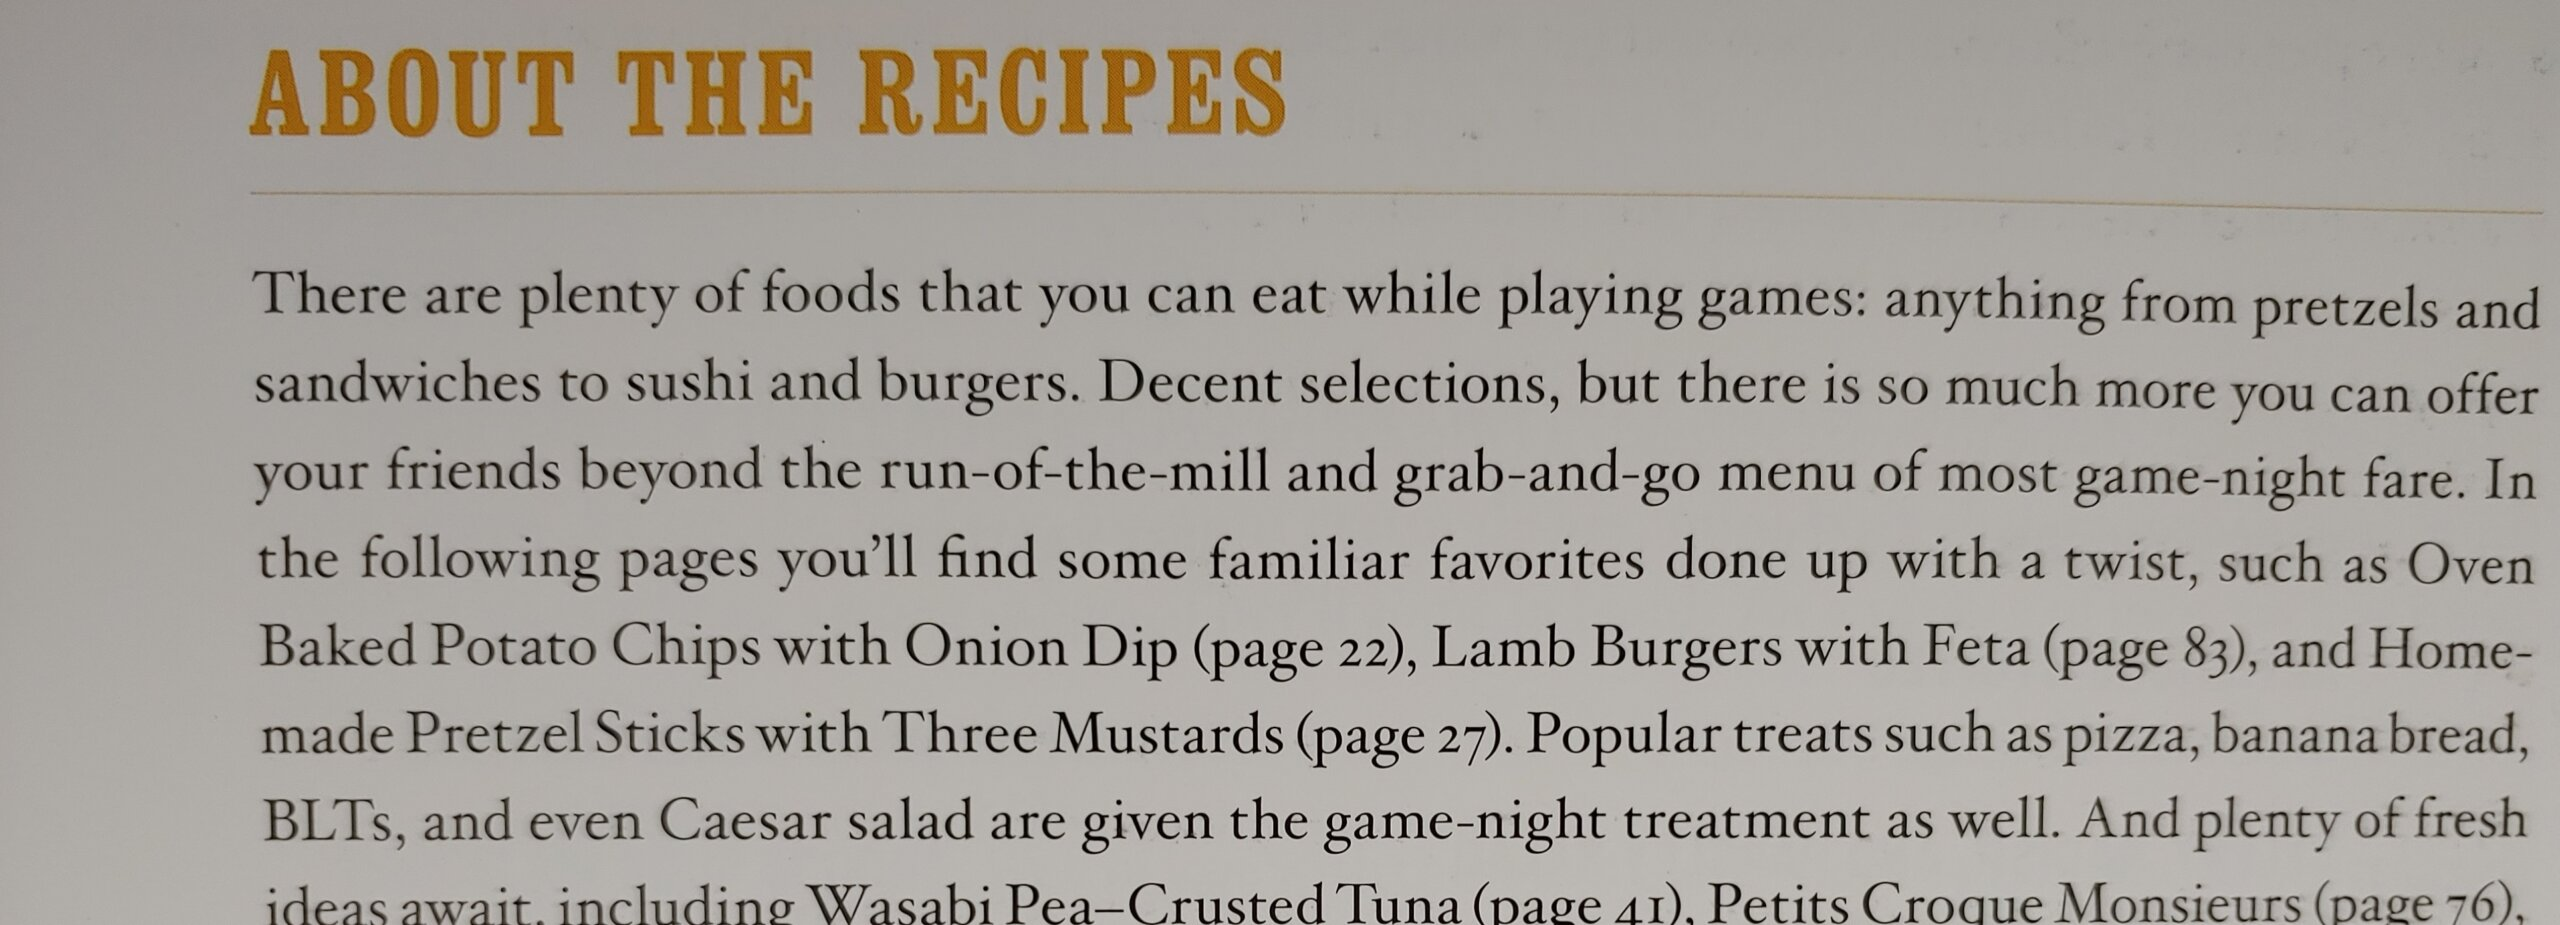 """Recipes and """"About"""" Them"""